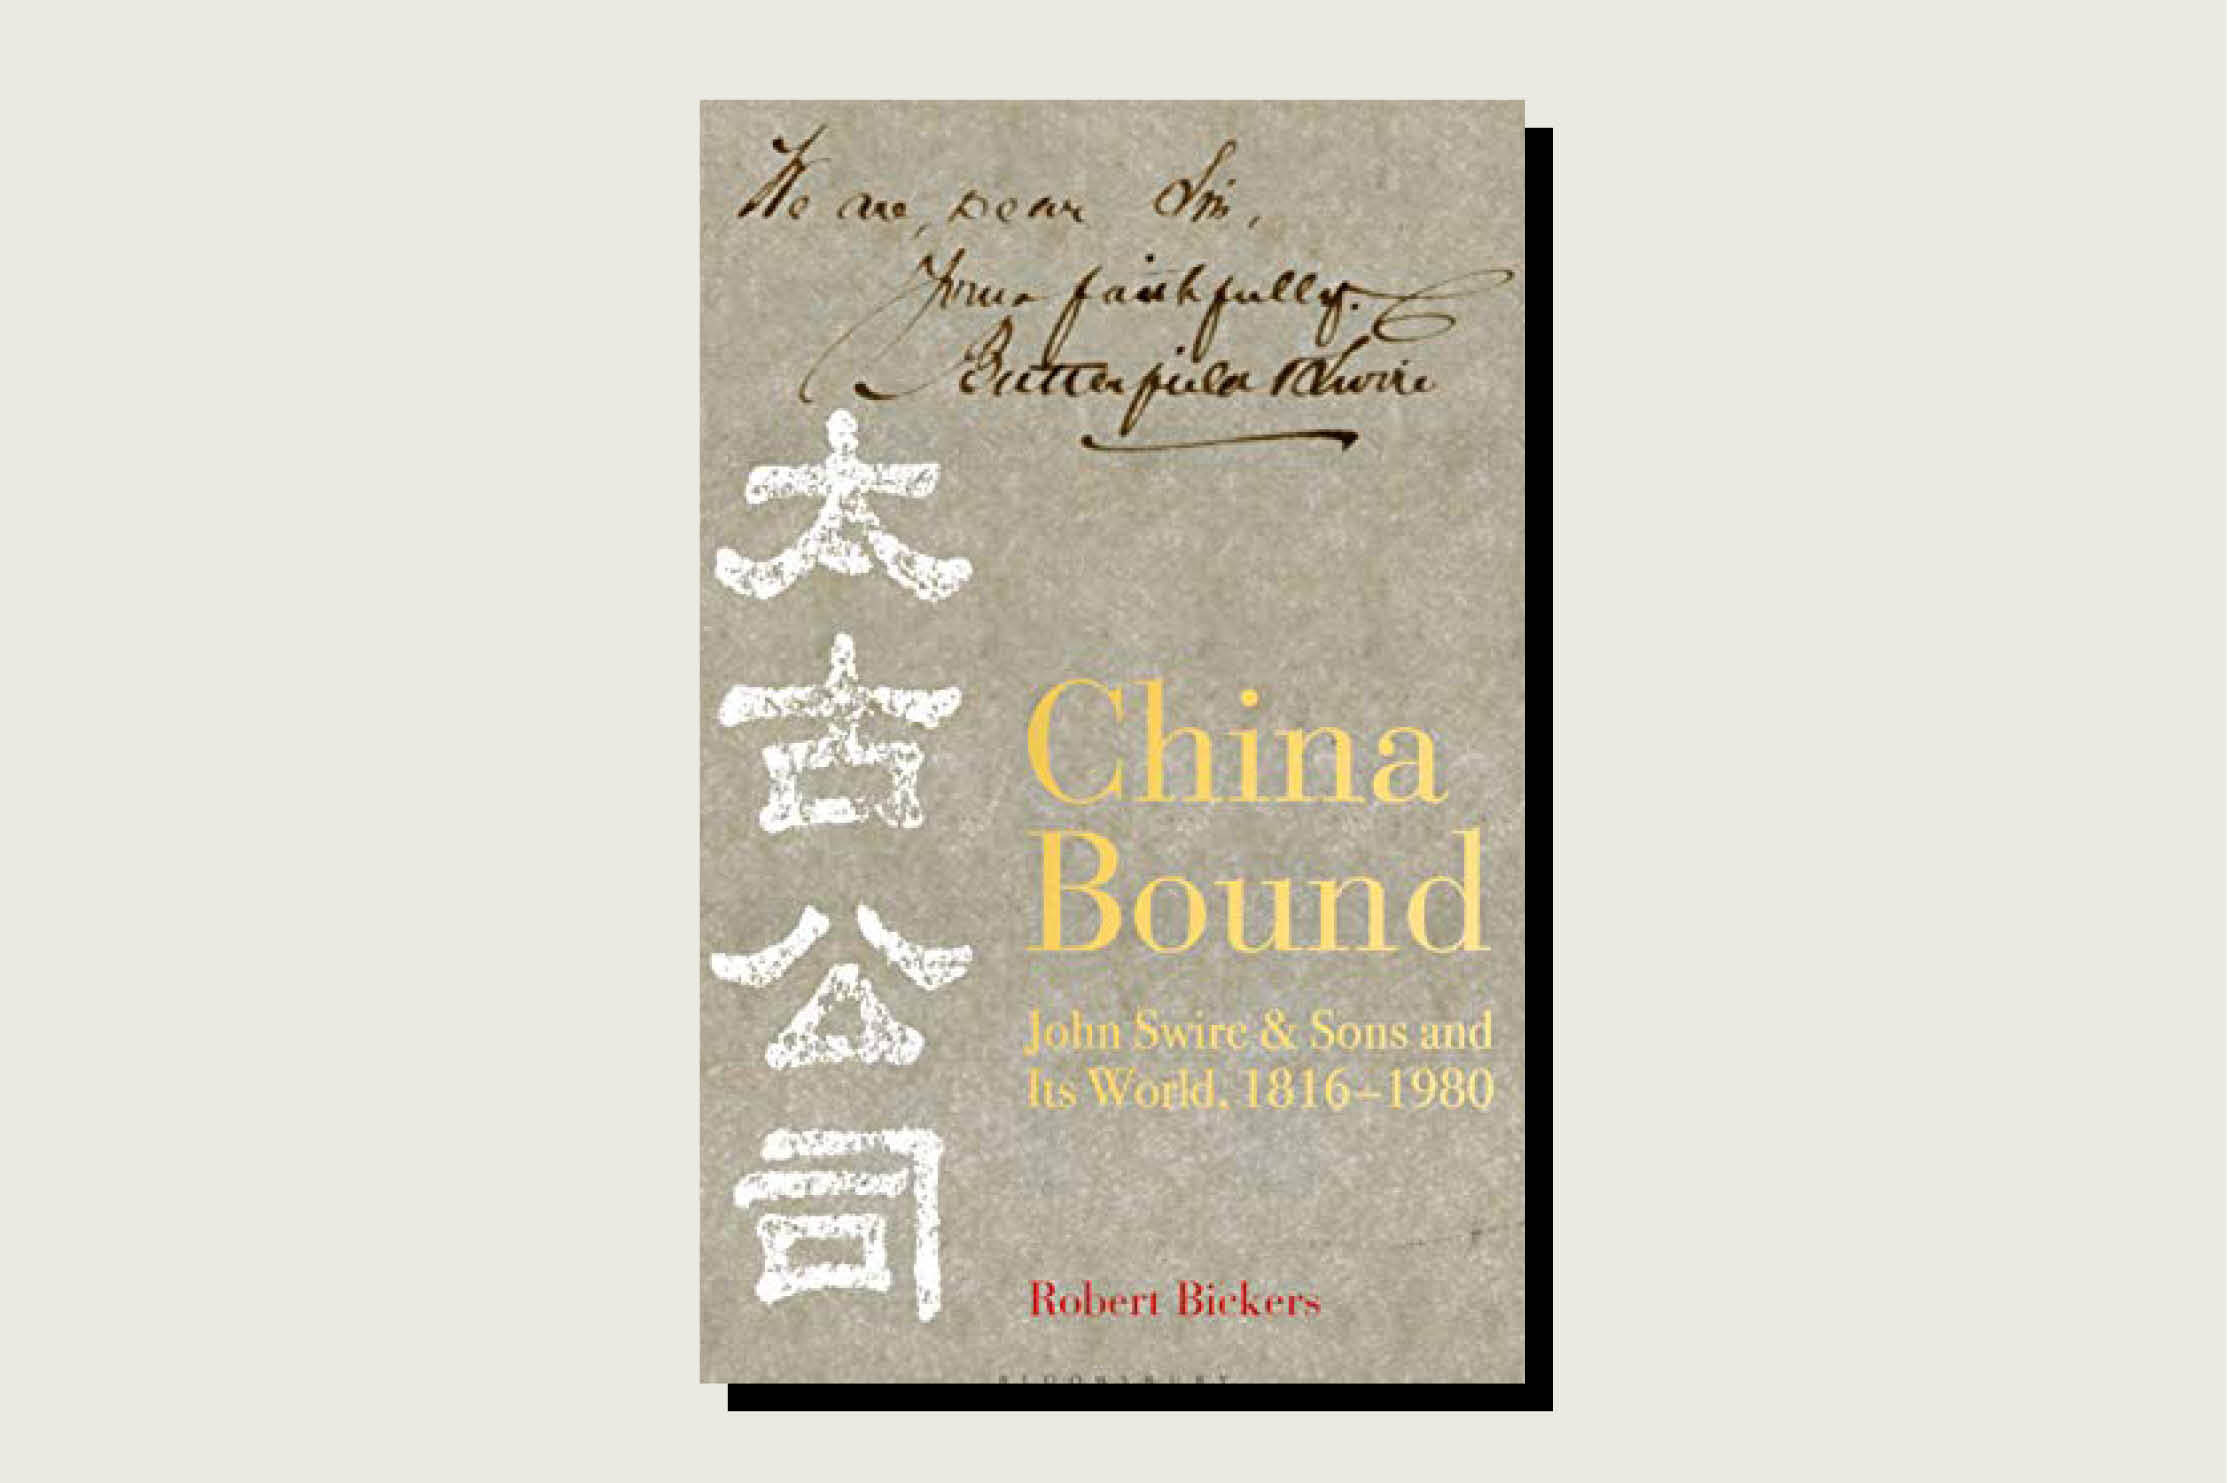 China Bound: John Swire & Sons and Its World, 1816-1980, Robert Bickers, Bloomsbury Business, 544 pp., March 2020